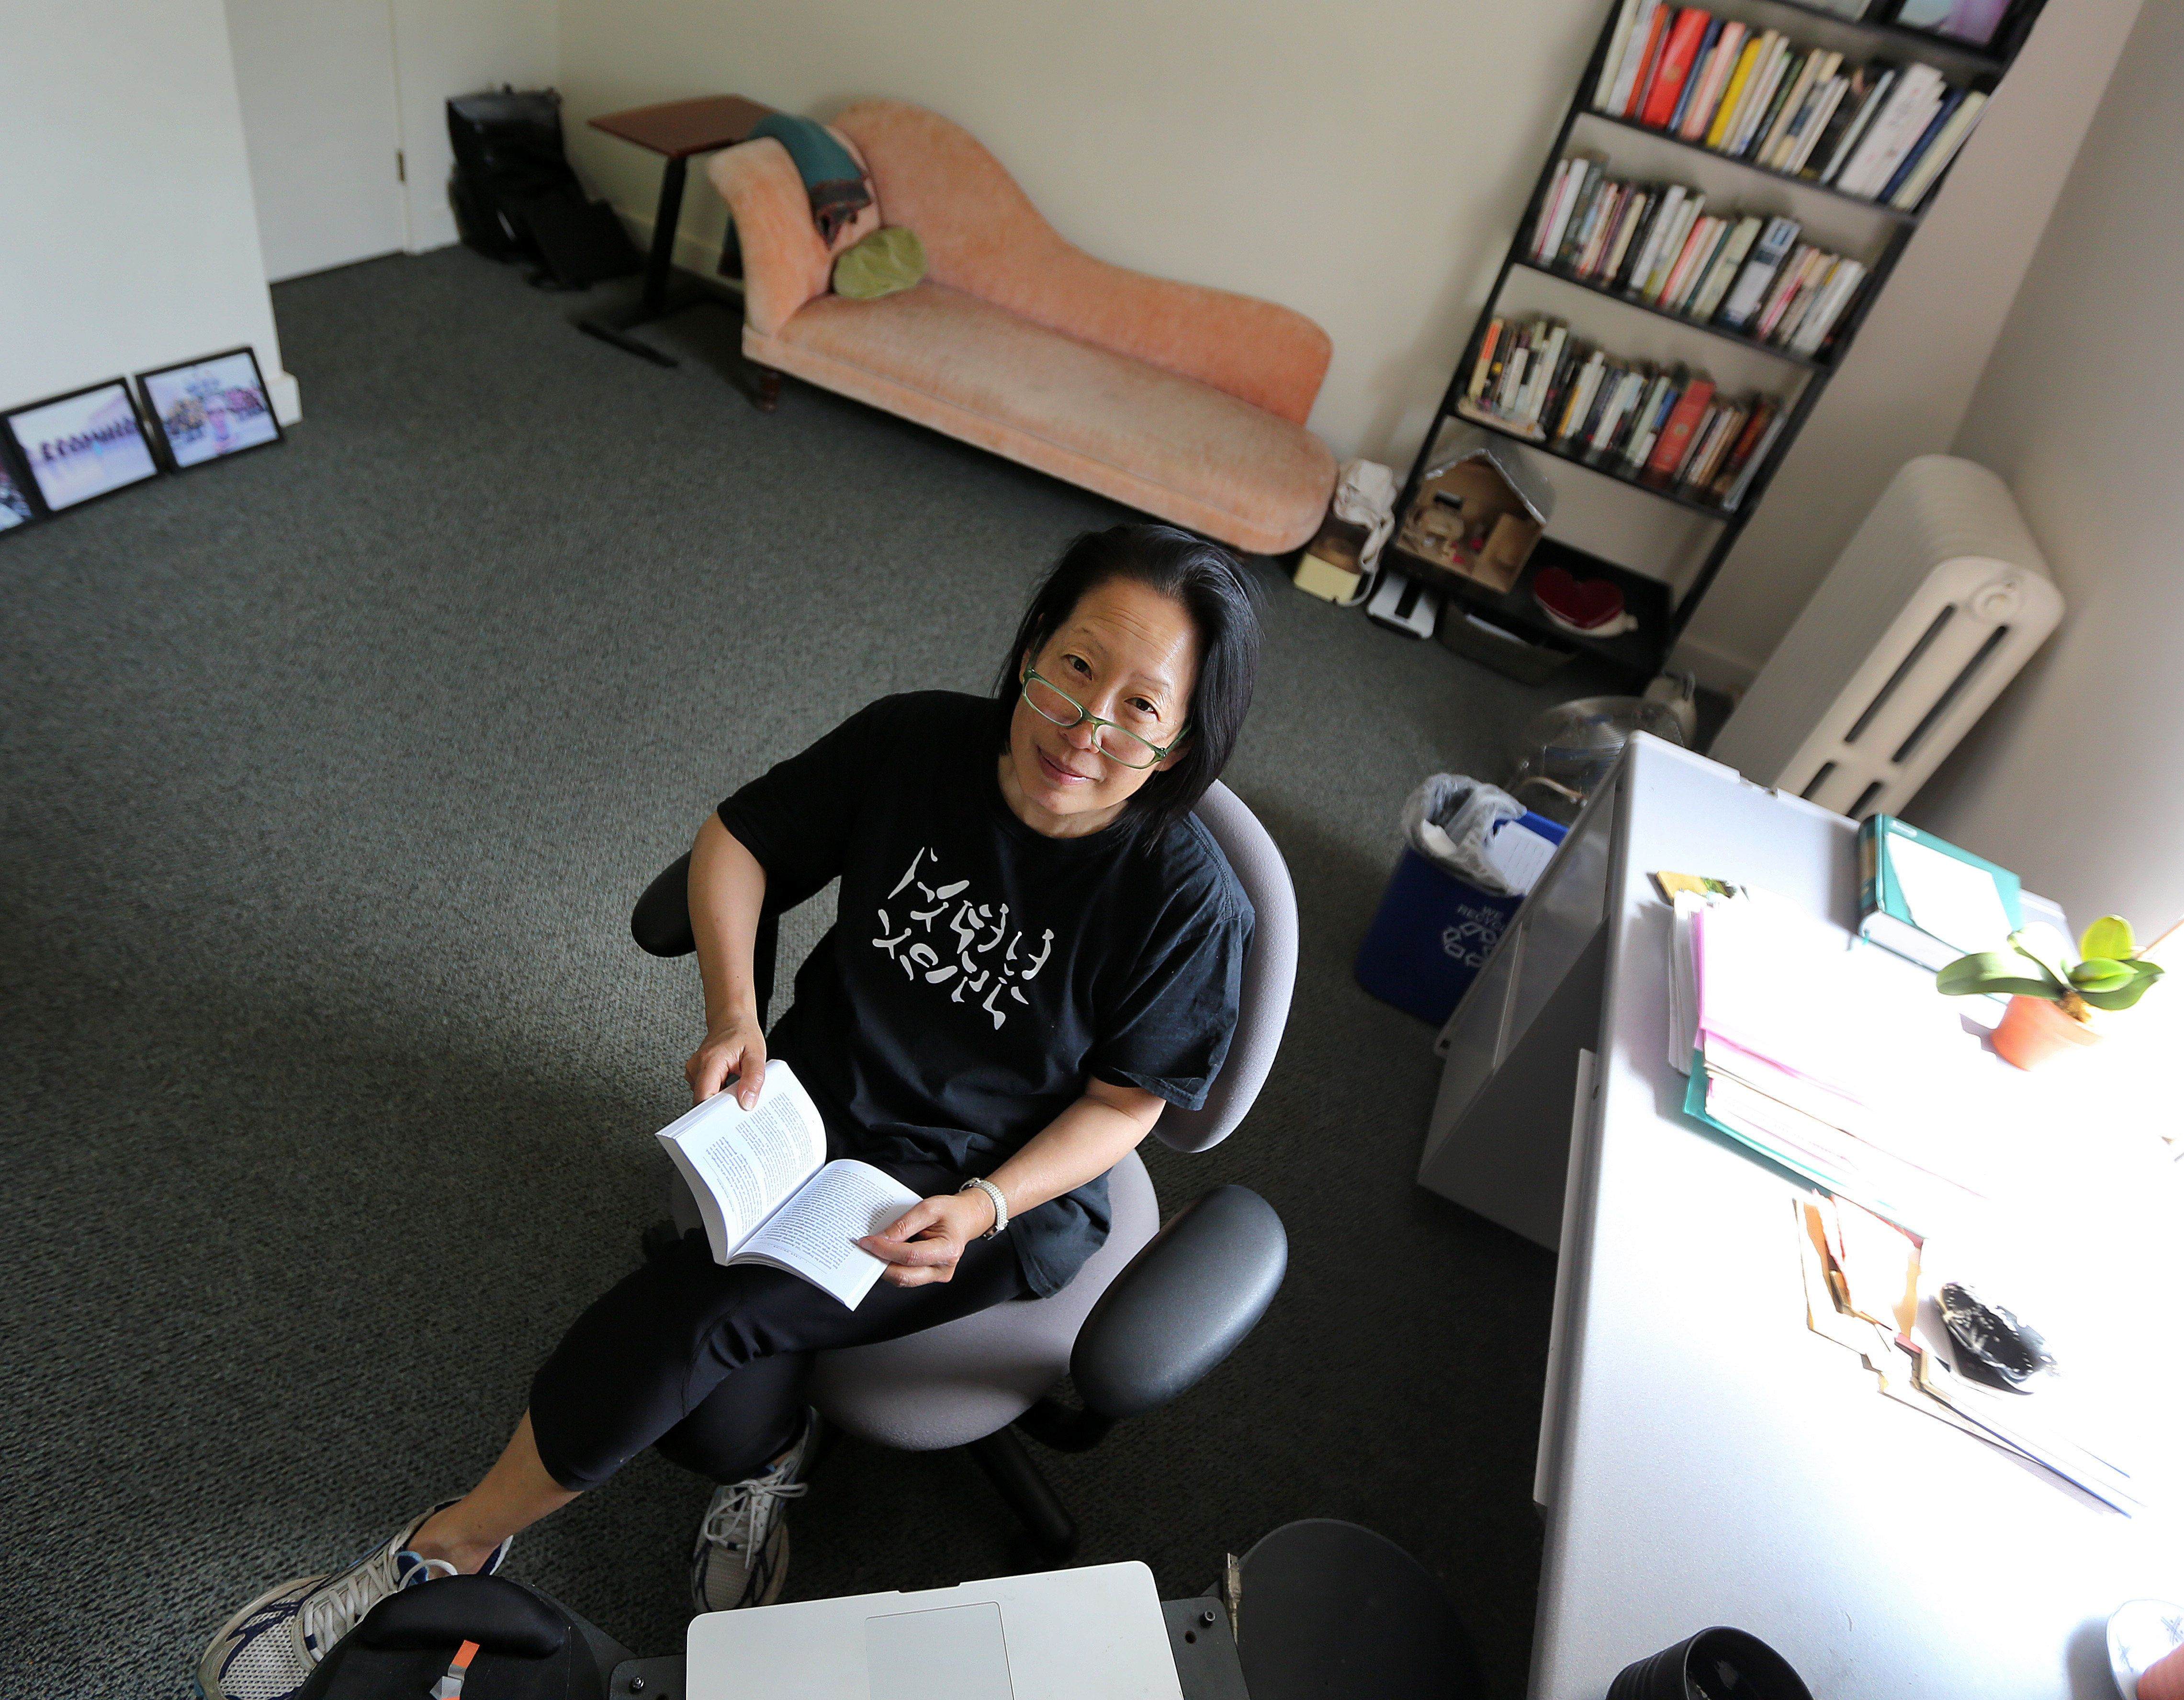 Author Gish Jen explains why the narrator in a recent fiction piece she wrote is an immigrant who uses English to tell the st